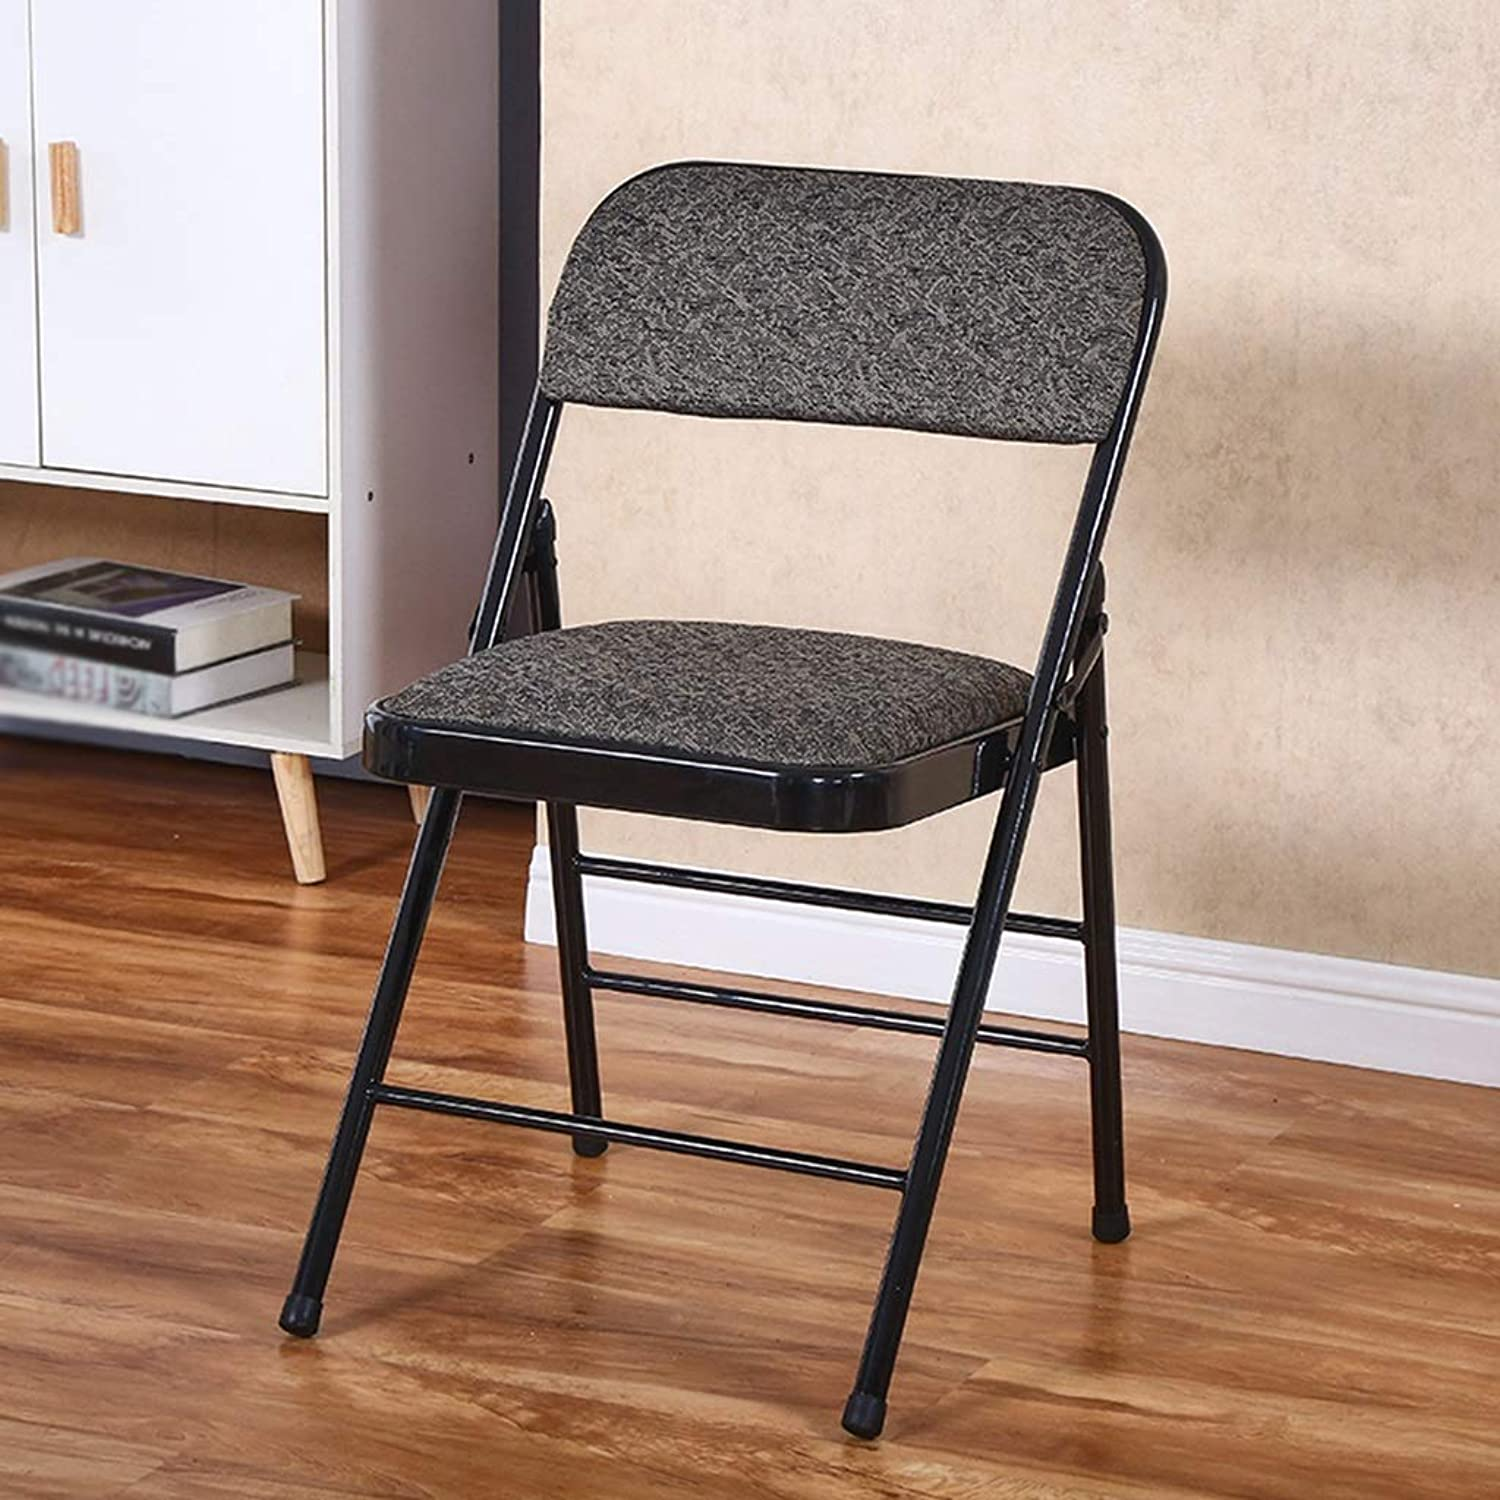 Balcony Folding Chair, Cloth Sponge Metal Folding Chair Household Bedroom Chair Office Studio Folding Chairs Height 79CM (color   Black)